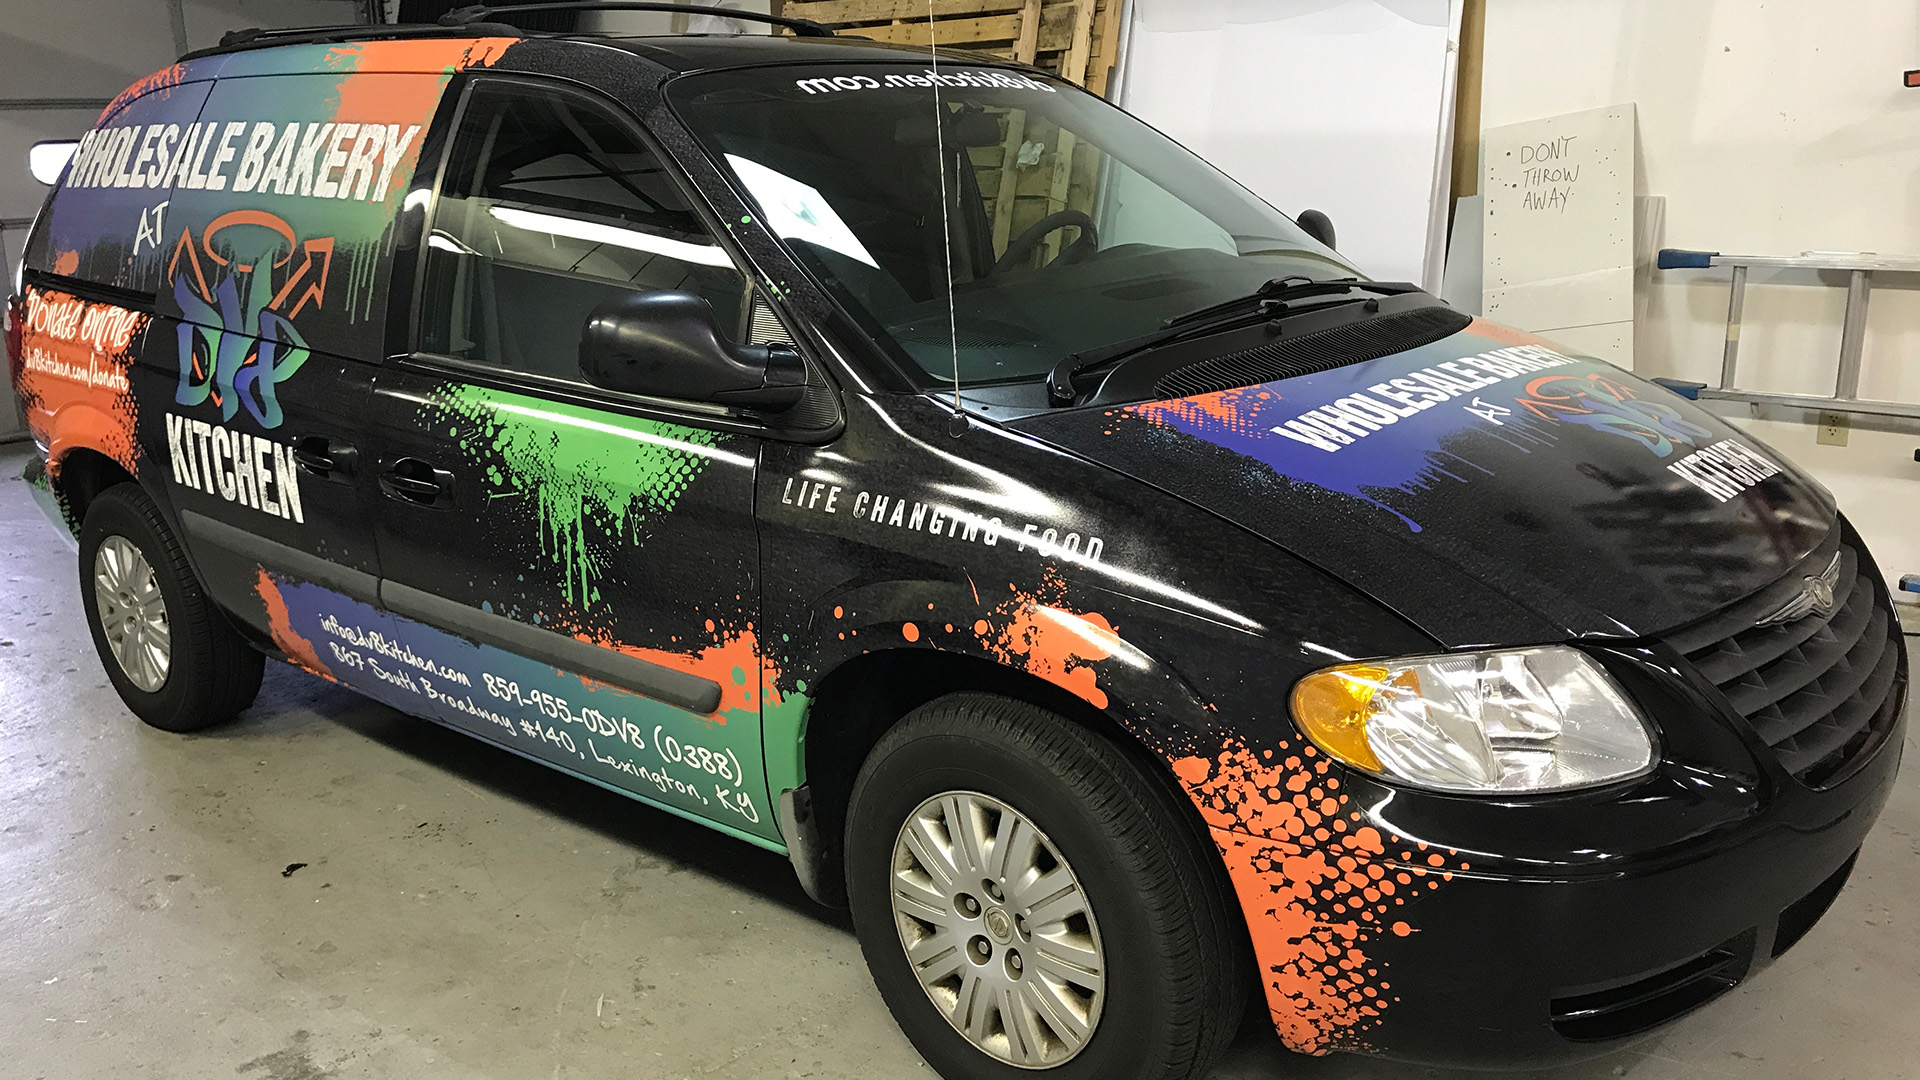 Wholesale Bakery Kitchen Vehicle Wrap